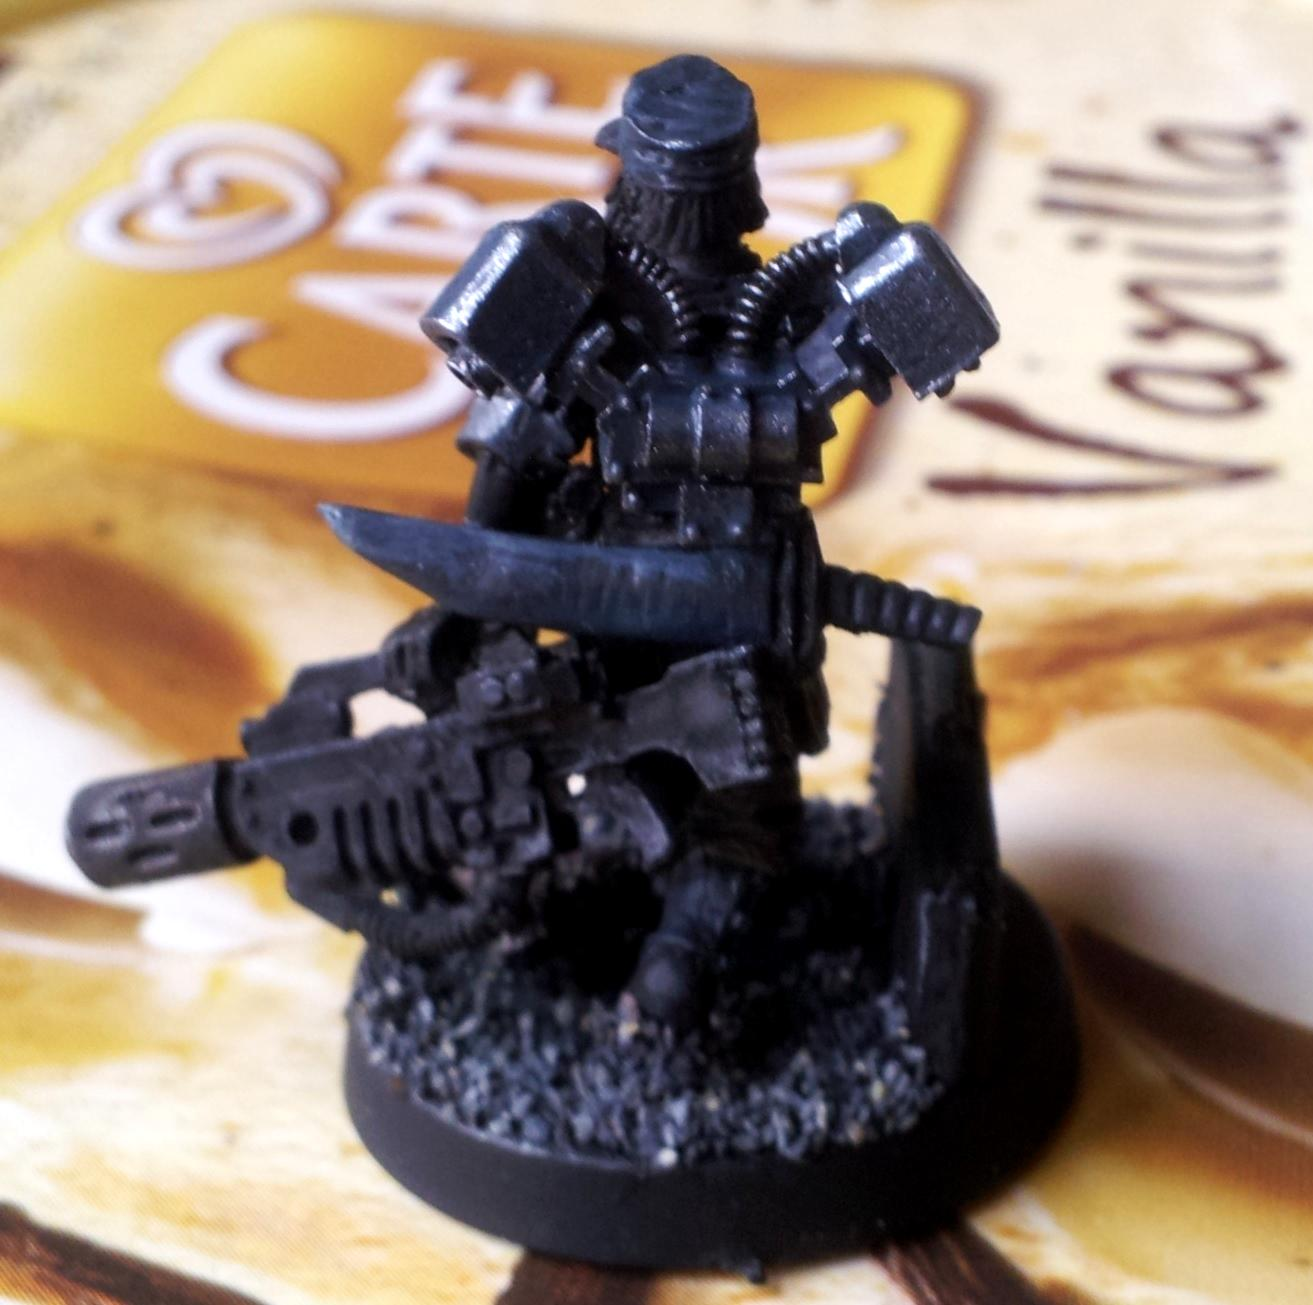 Drop Troops, Female, Gang, Imperial Guard, Inquisimunda, Kill Team, Necromunda, Vic, Victoria Miniatures, Warband, Work In Progress